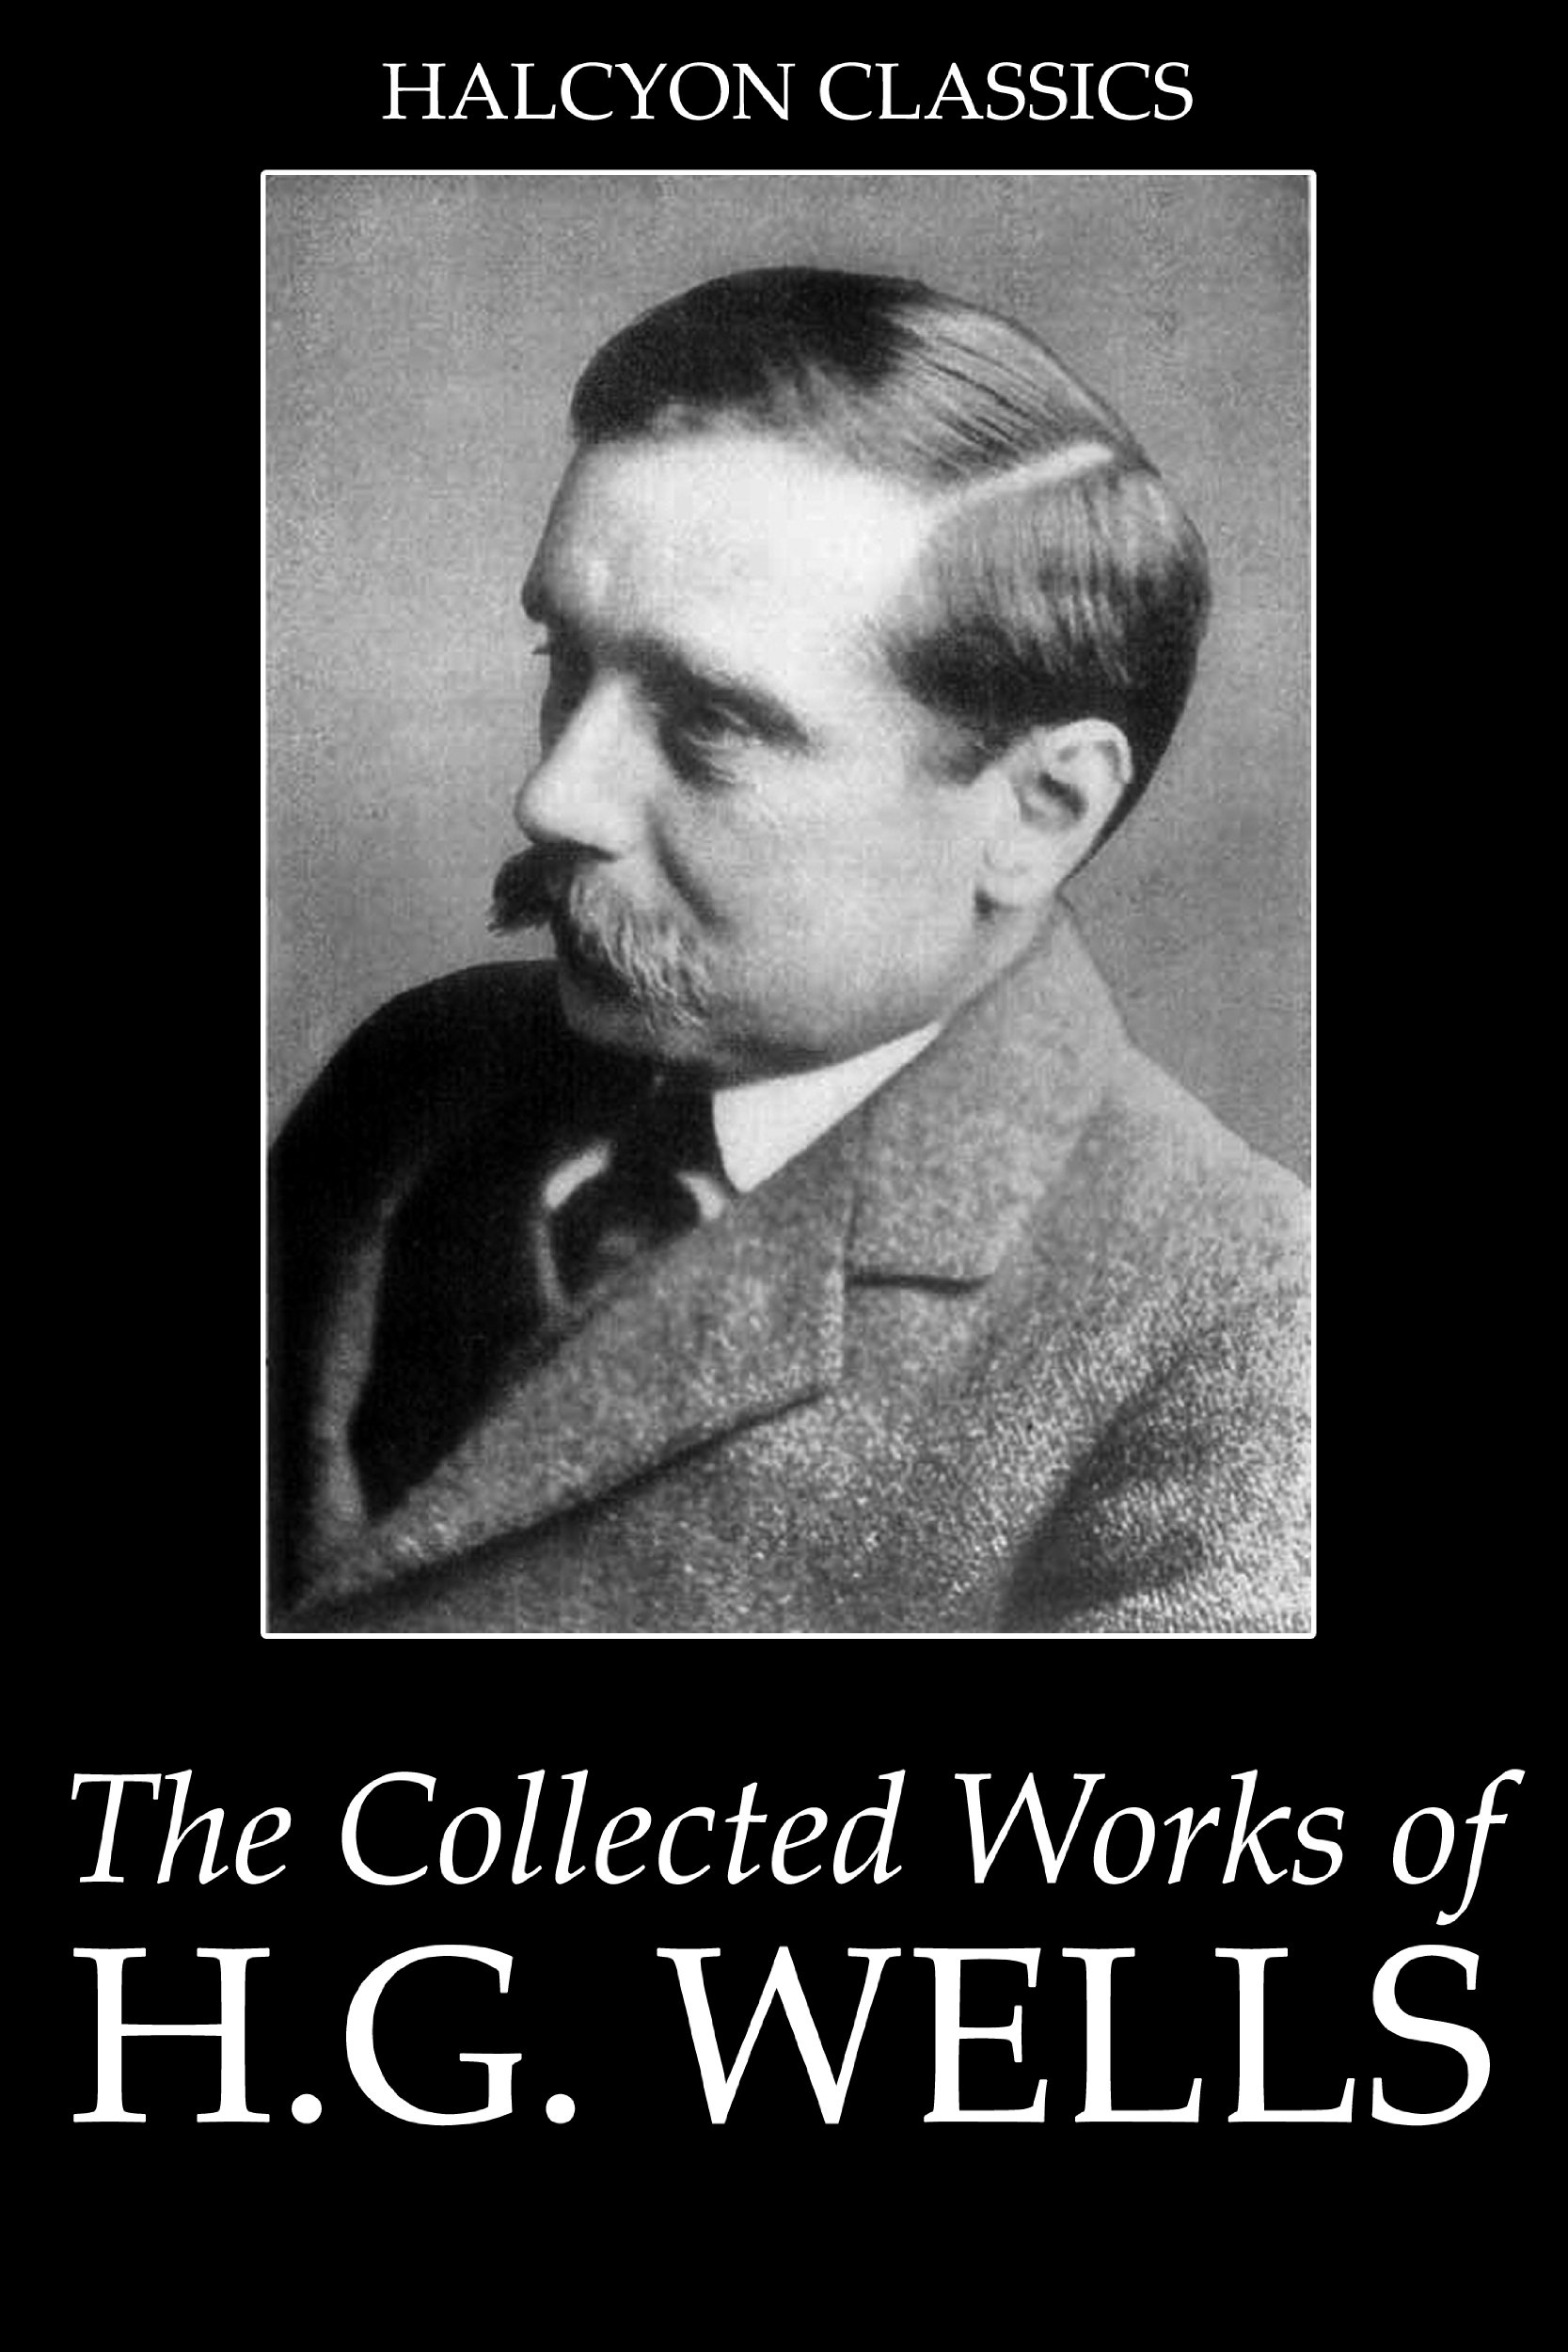 H.G. Wells - Complete Works